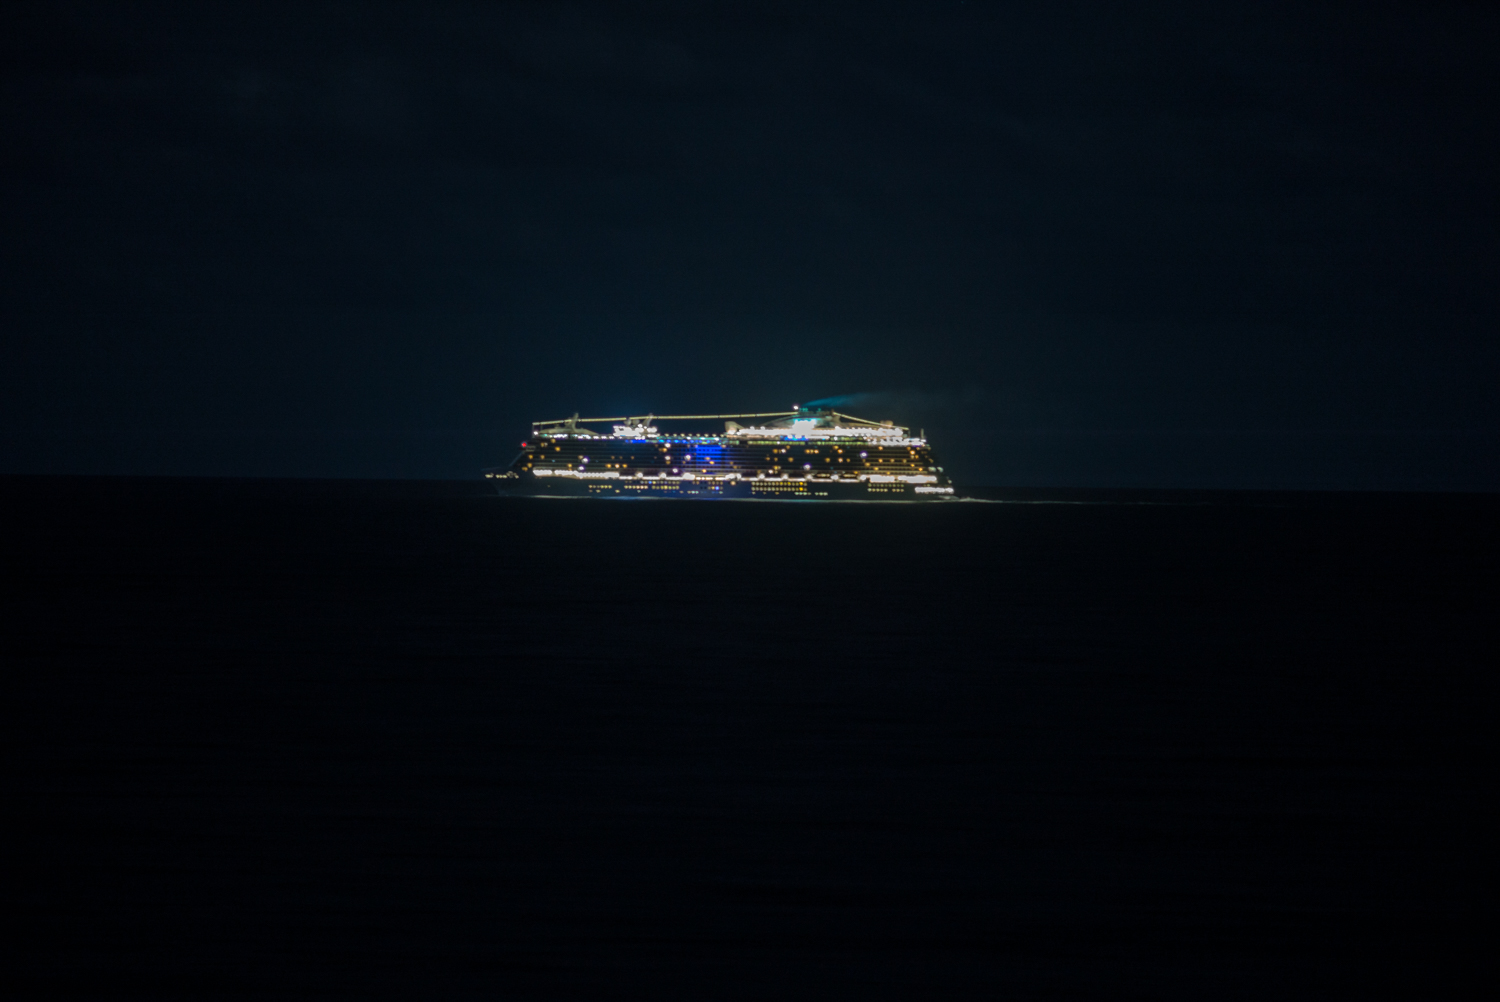 The Other Ship Passing in the Night